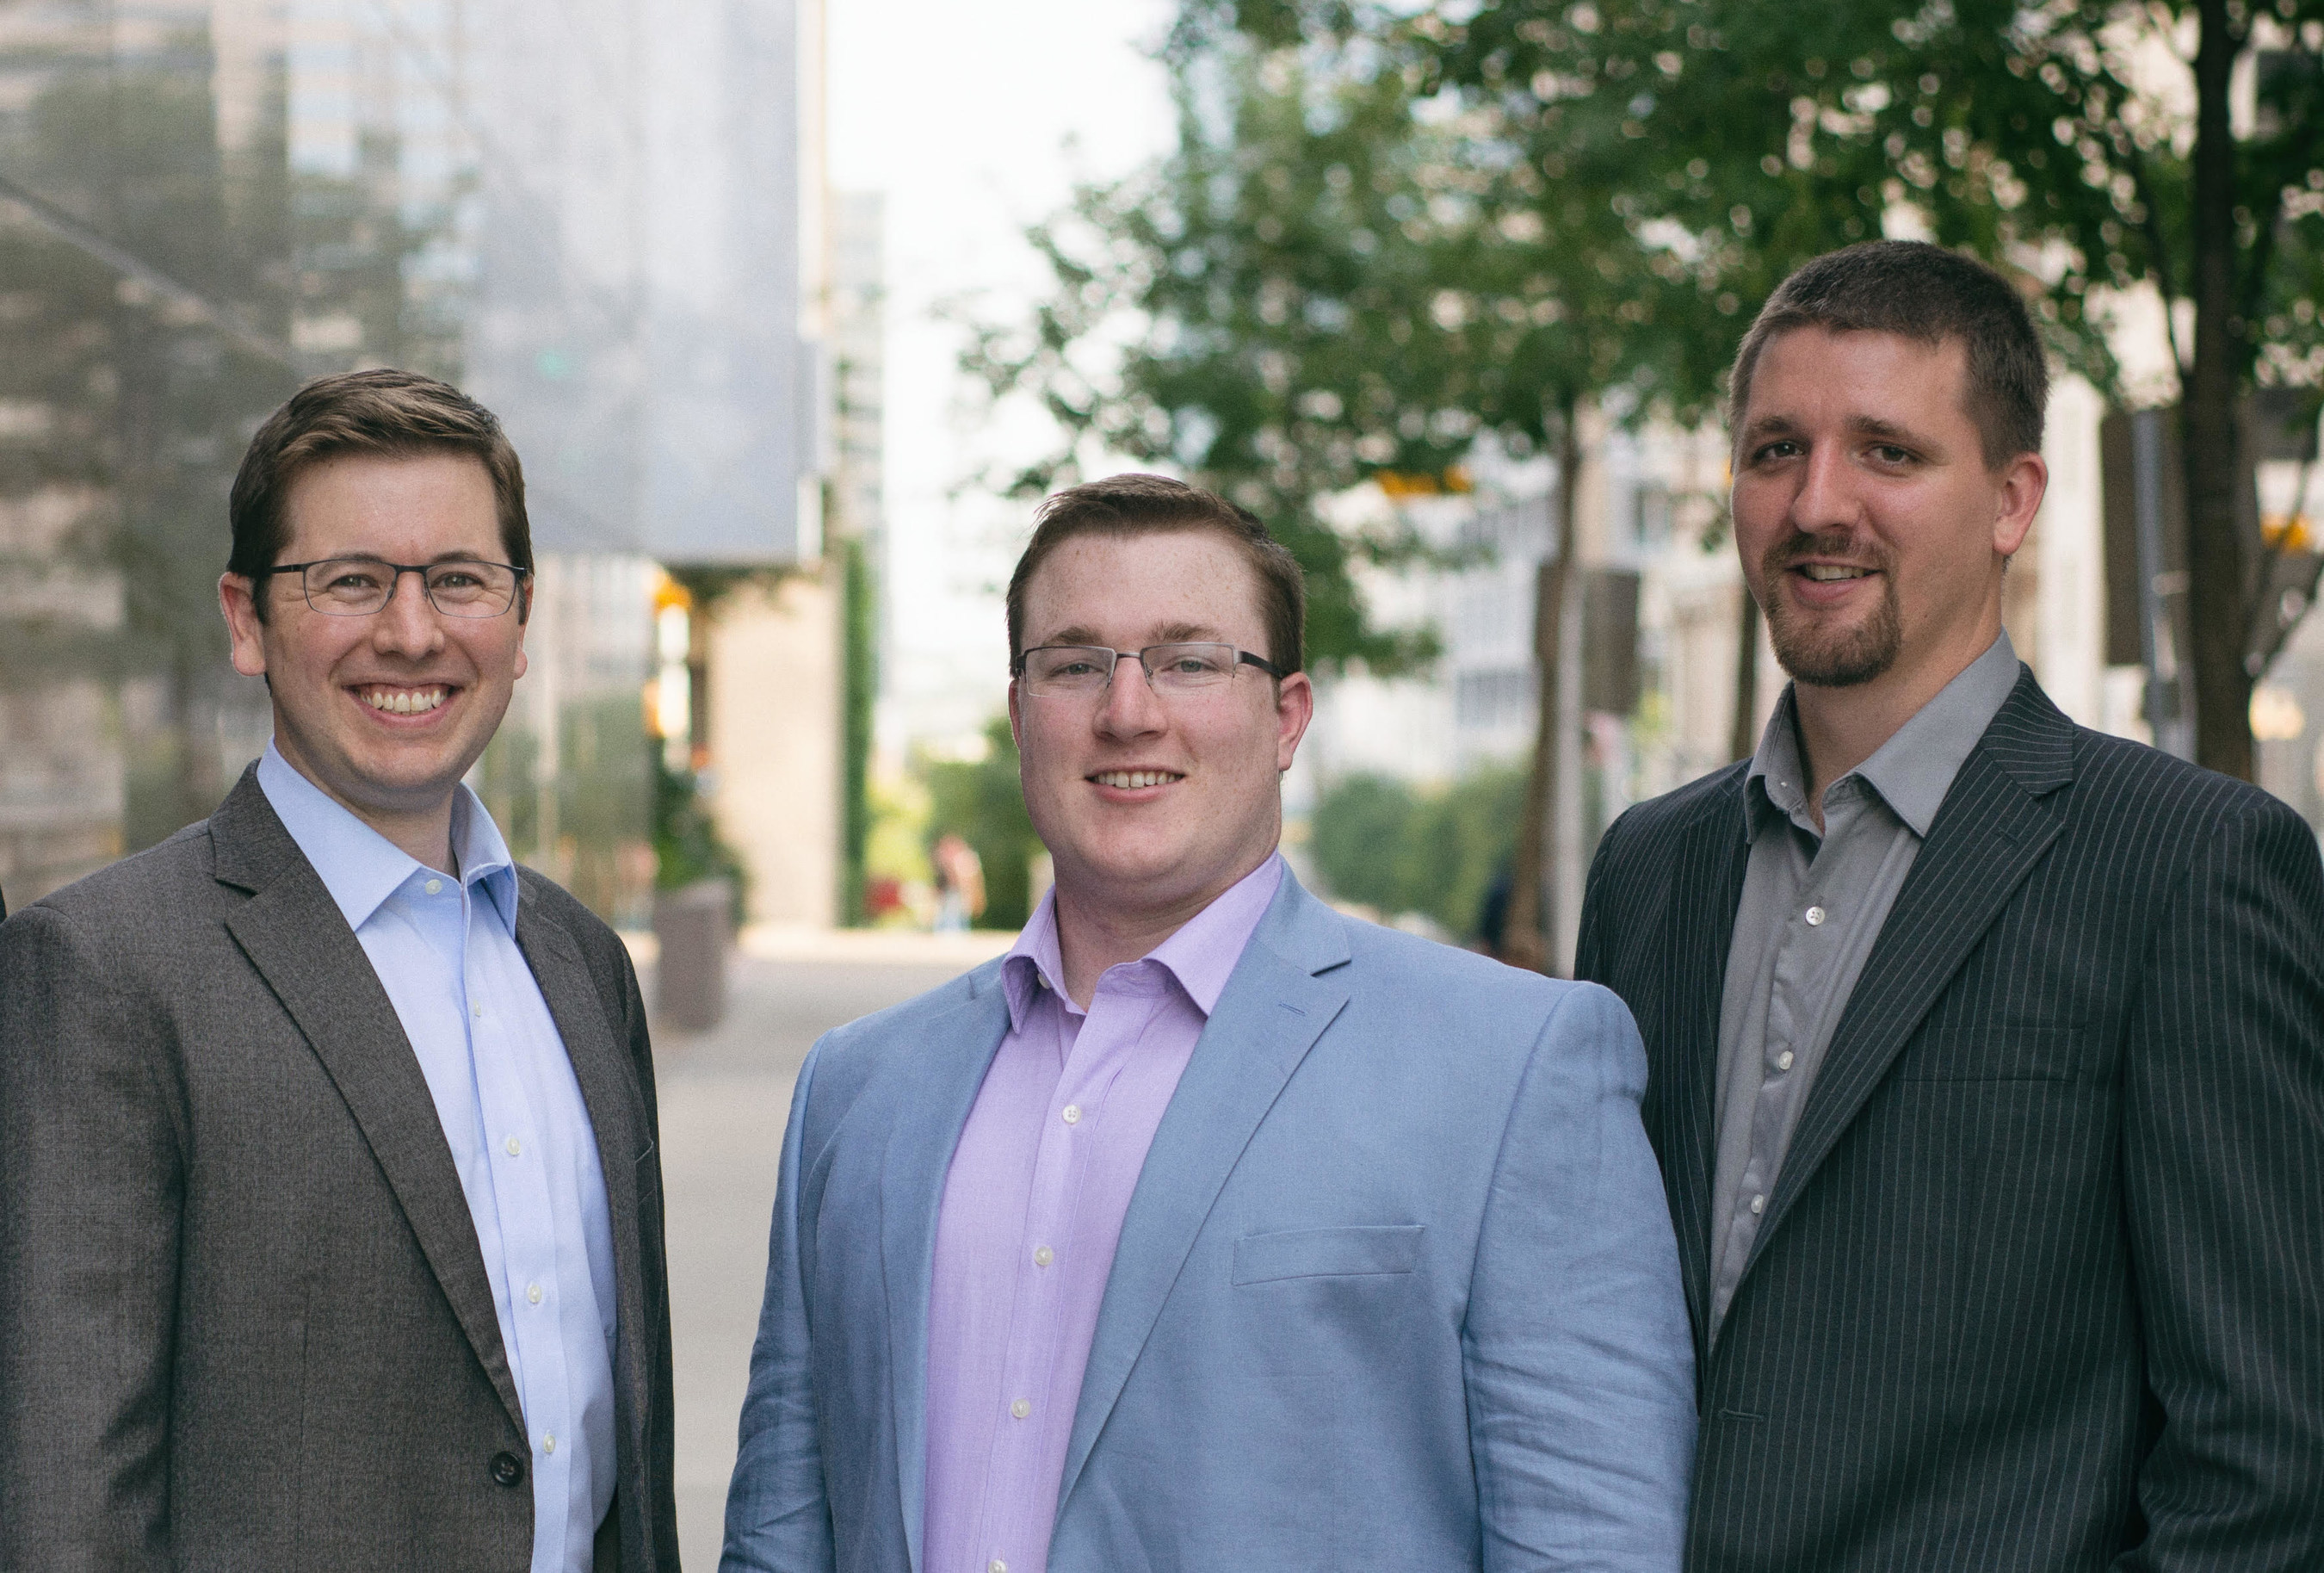 Dragos Inc, founders Jon Lavender, Robert M. Lee, and Justin Cavinee (left to right).